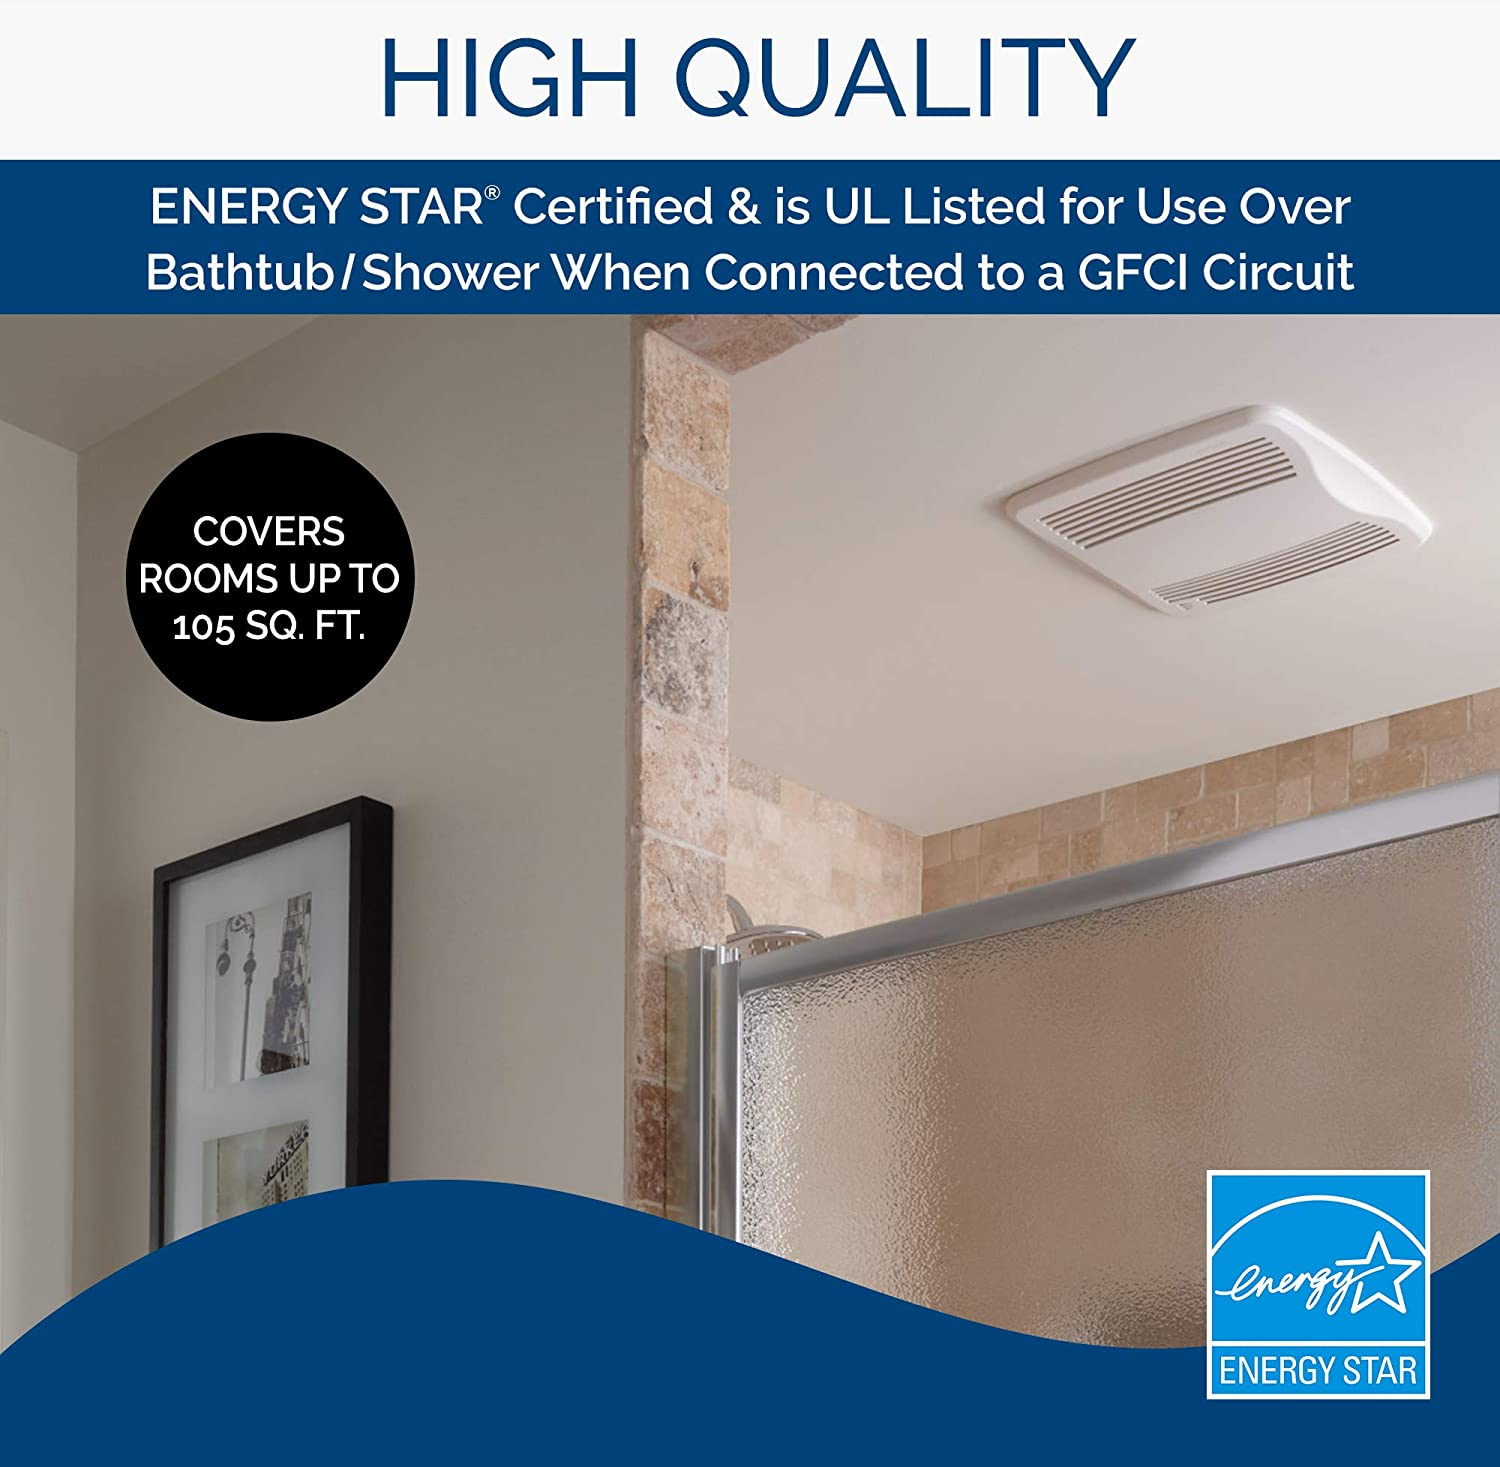 """Broan-Nutone QTXE110S Ultra-Silent Humidity-Sensing Ventilation Fan, Exhaust Fan for Bathroom and Home, ENERGY STAR Certified, 0.7 Sones, 110 CFM , White , 6"""" Round"""